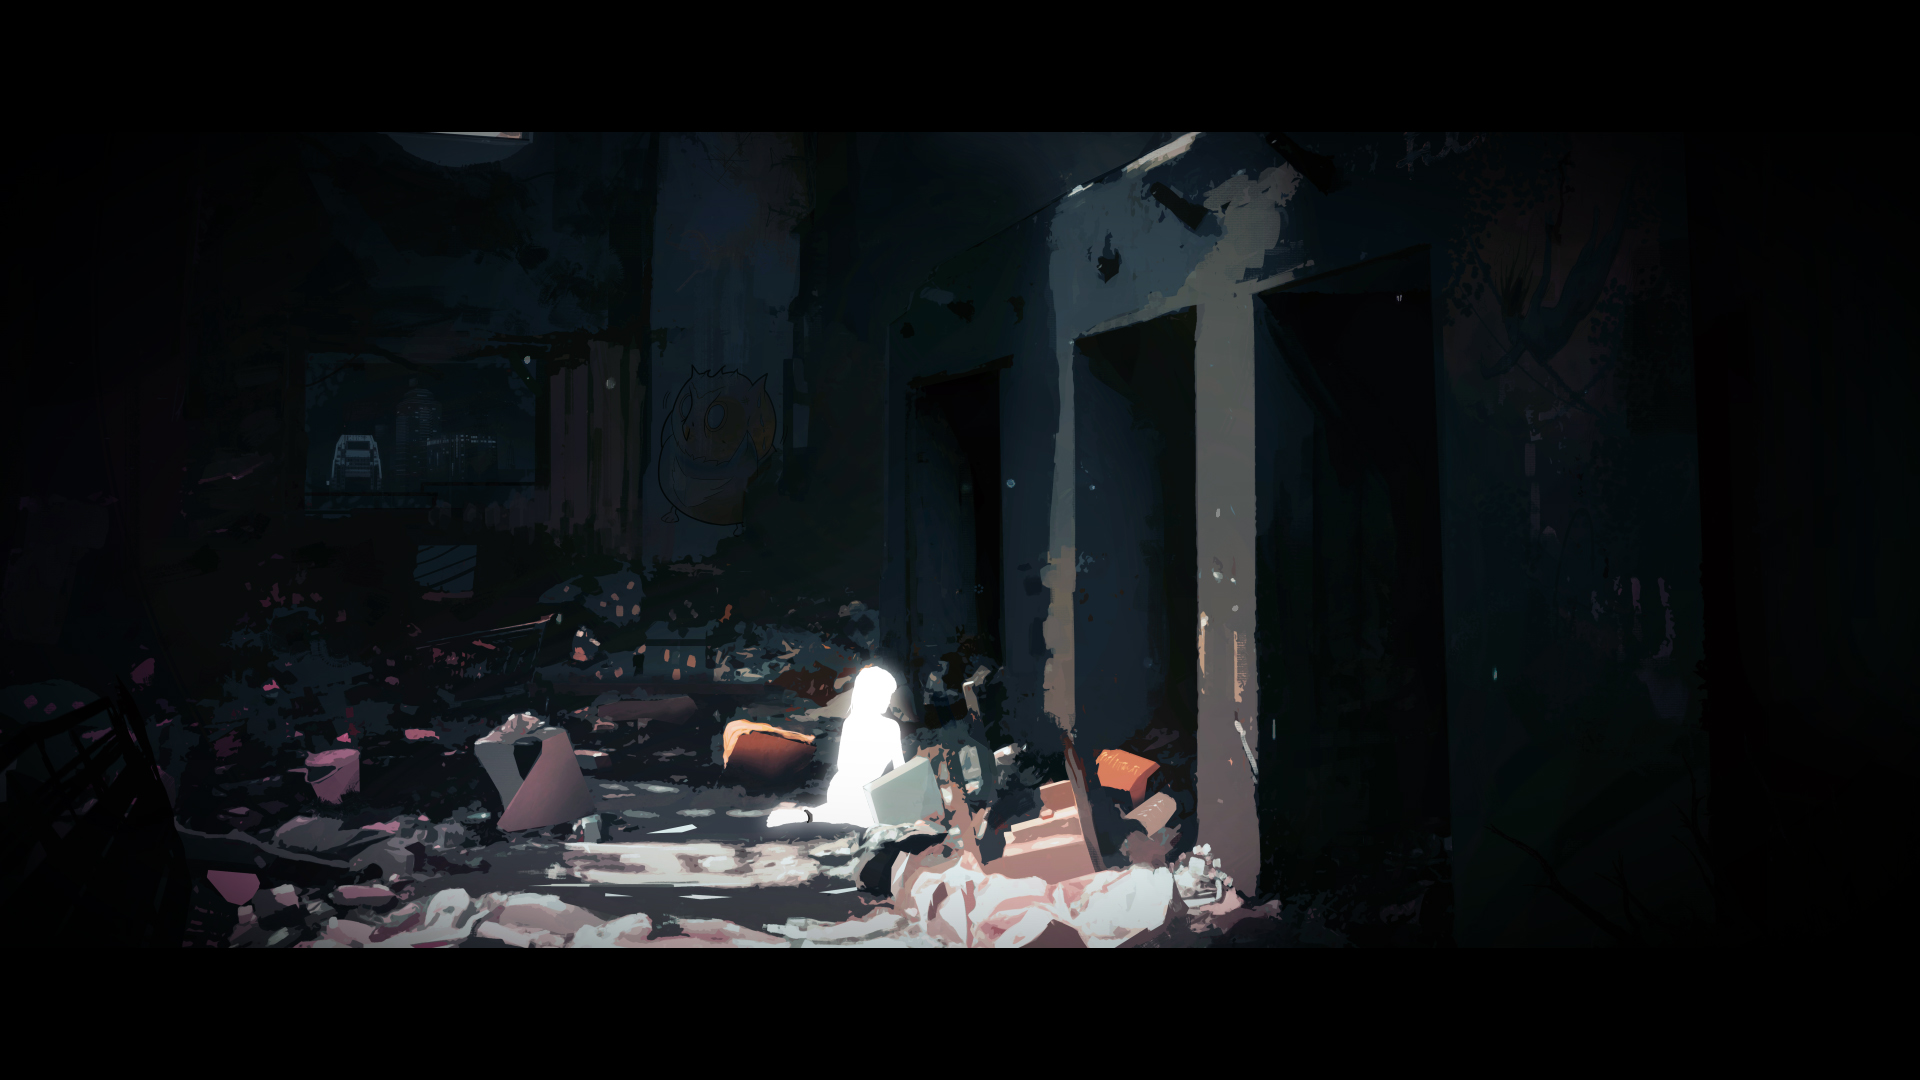 Illustration of a white glowing human in the middle of an abandoned building